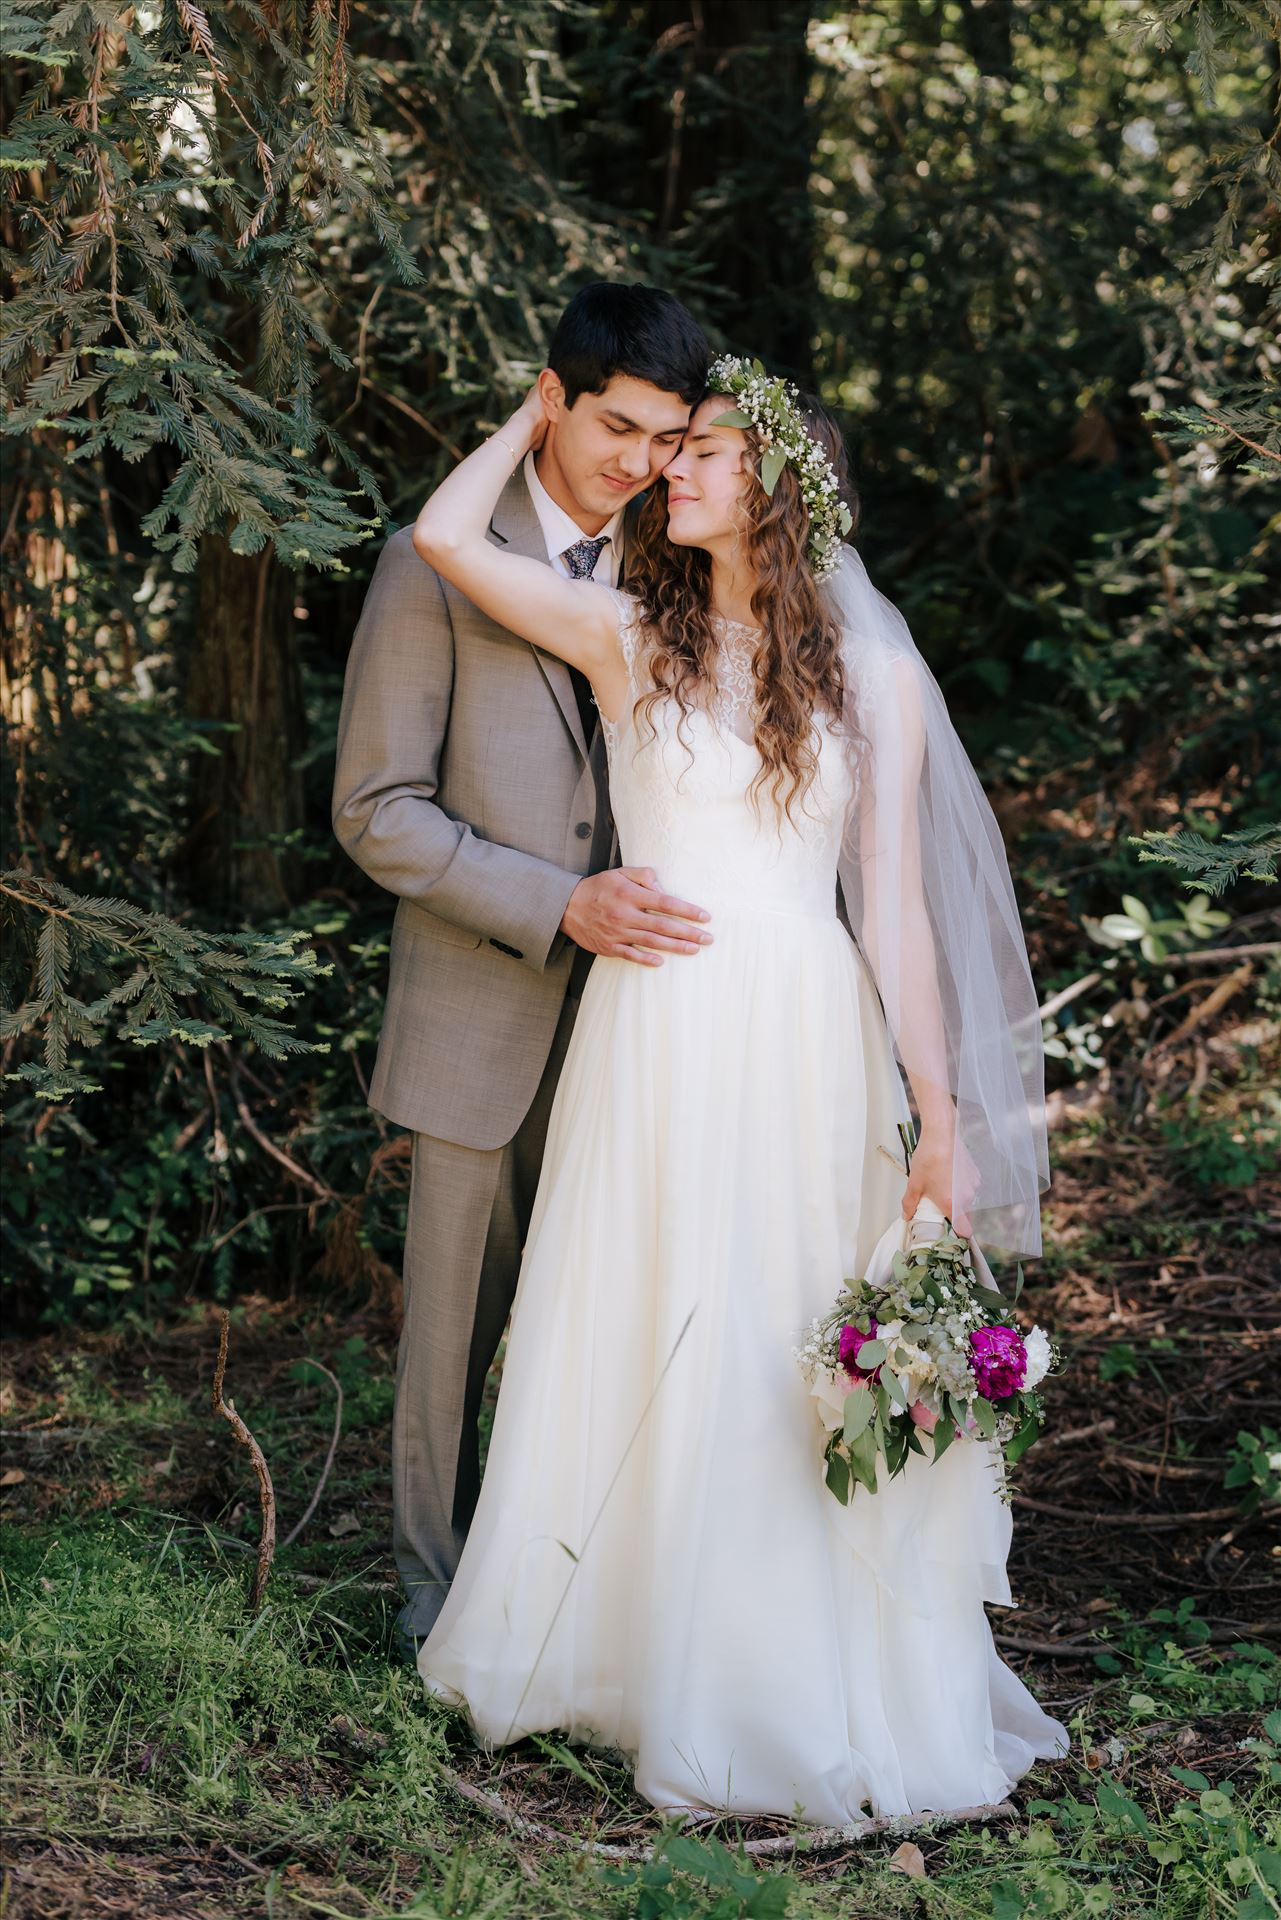 FW-5983.JPG Mt Madonna wedding in the redwoods outside of Watsonville, California with a romantic and classic vibe by sarah williams of mirror's edge photography a san luis obispo wedding photographer.  Bride and groom romantic by Sarah Williams